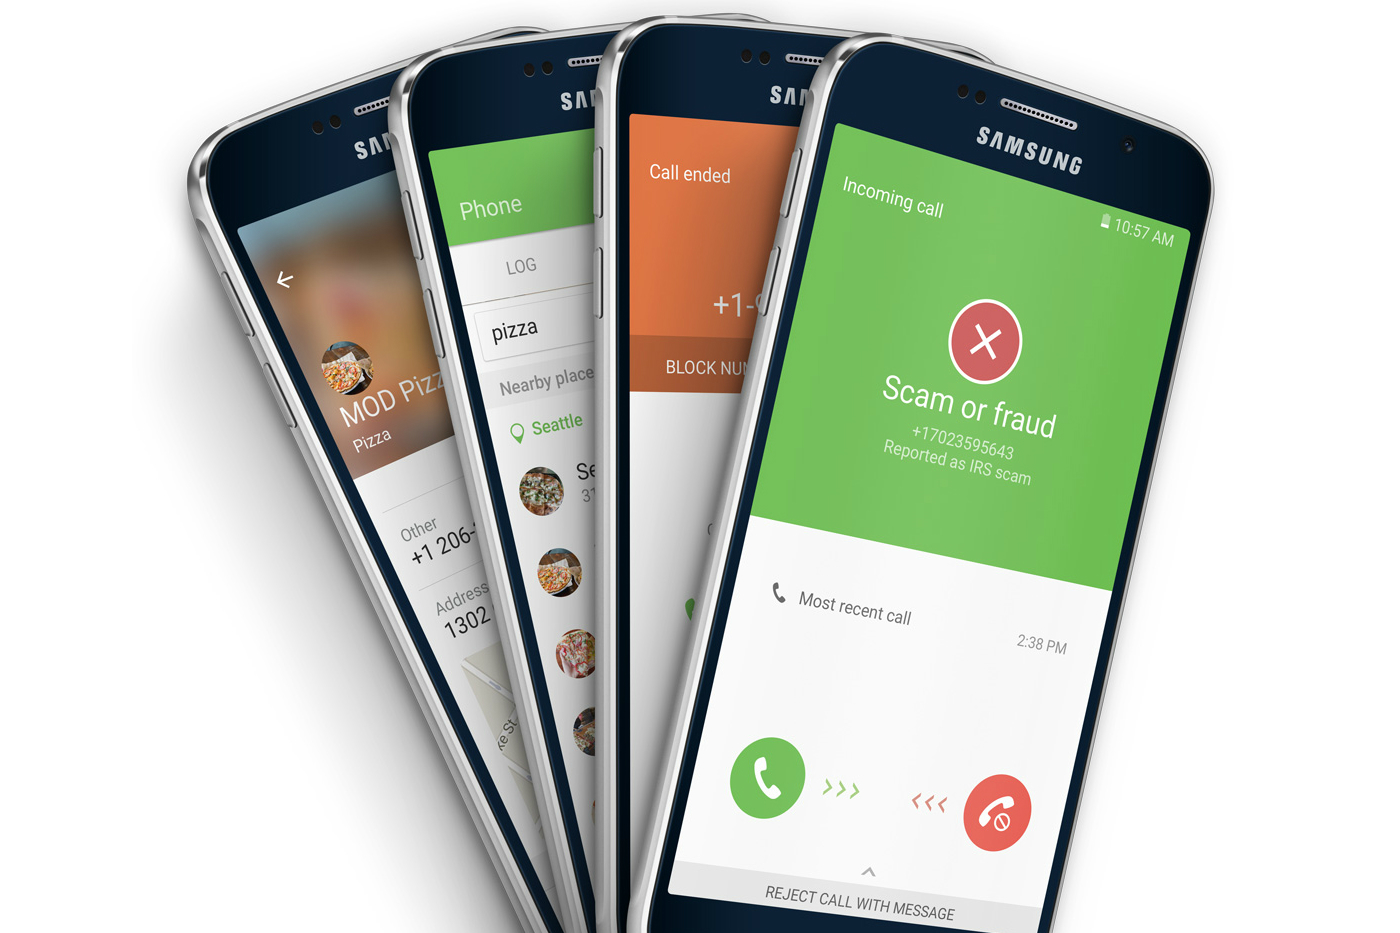 Samsung's Galaxy S7 automatically flags nuisance callers